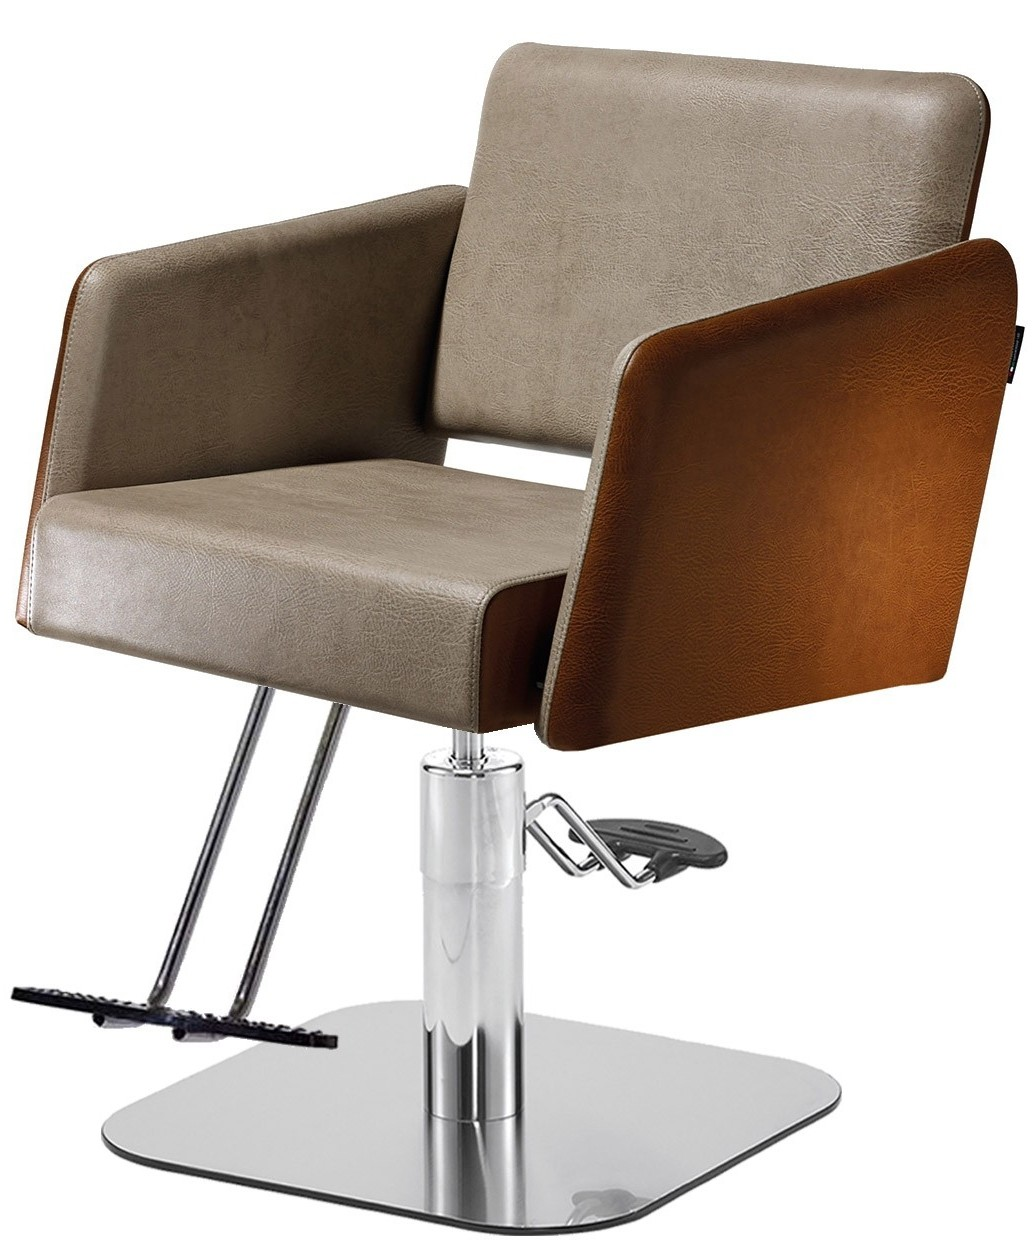 Salon ambience sh 325 kite styling chair for Buy rite salon